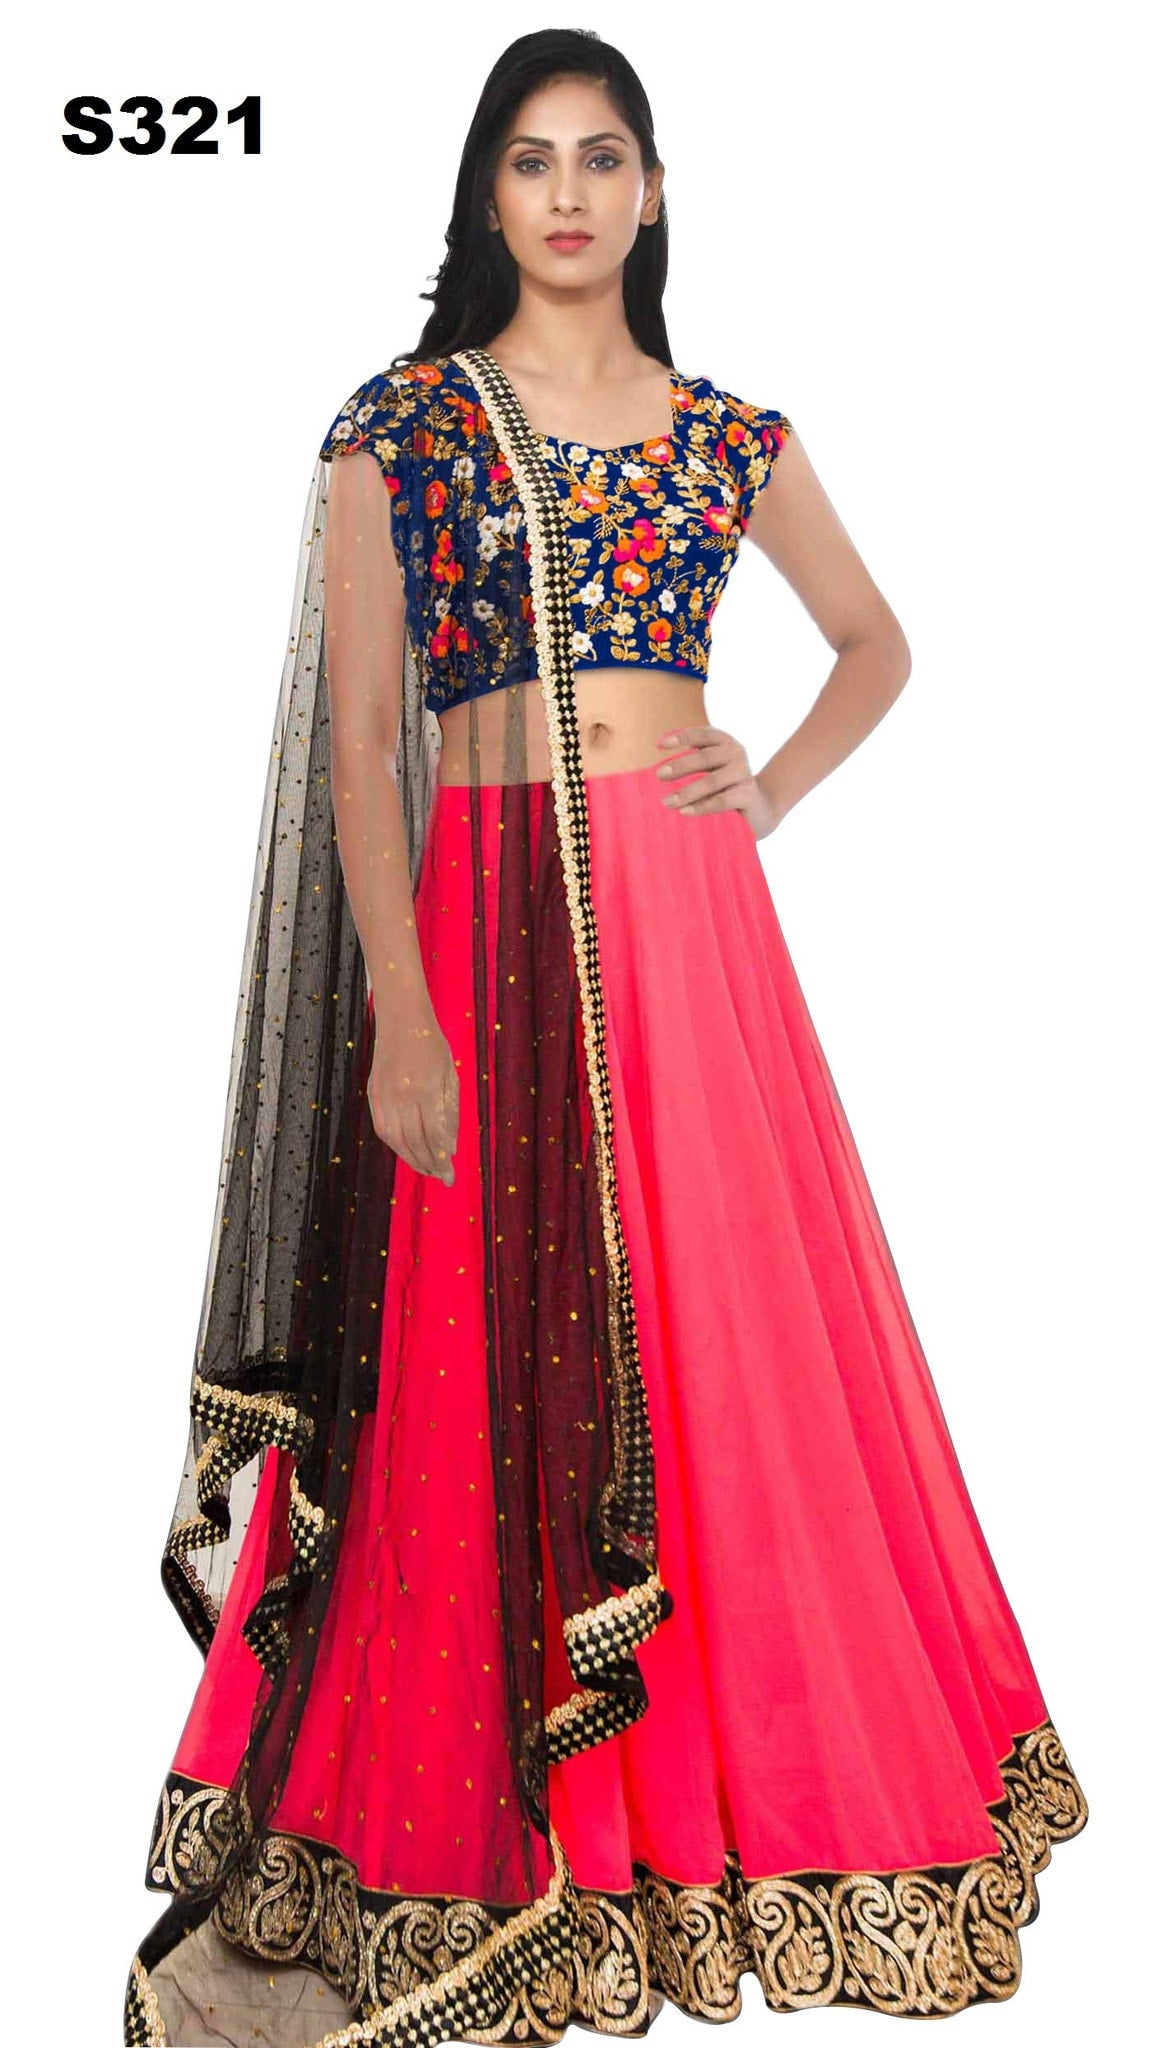 Pink Georgette Bollywood Lehenga For Sale ,Indian Dresses - 1